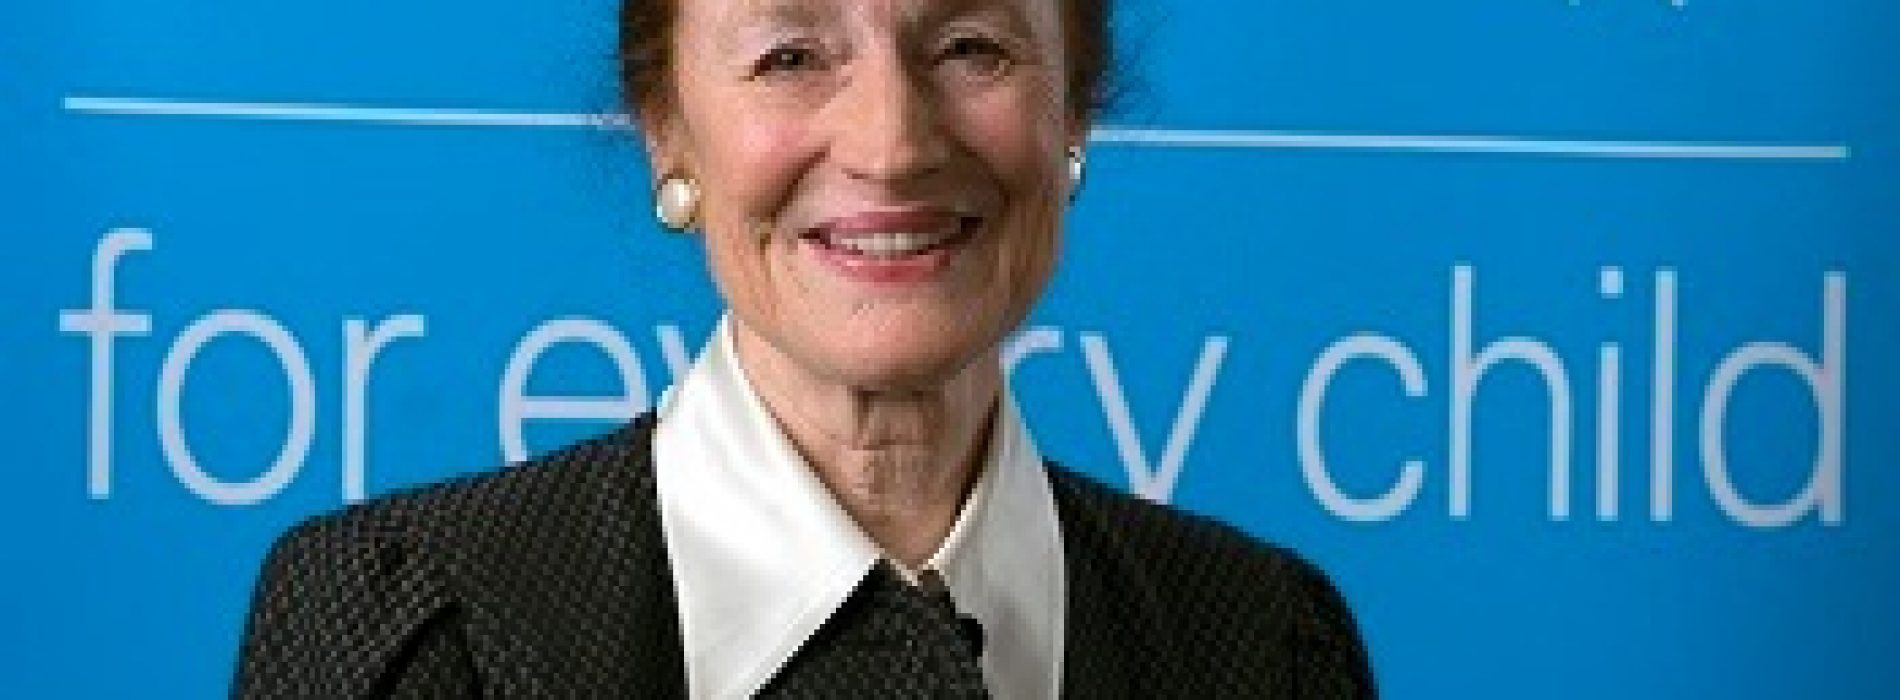 Henrietta Fore becomes new UNICEF Executive Director